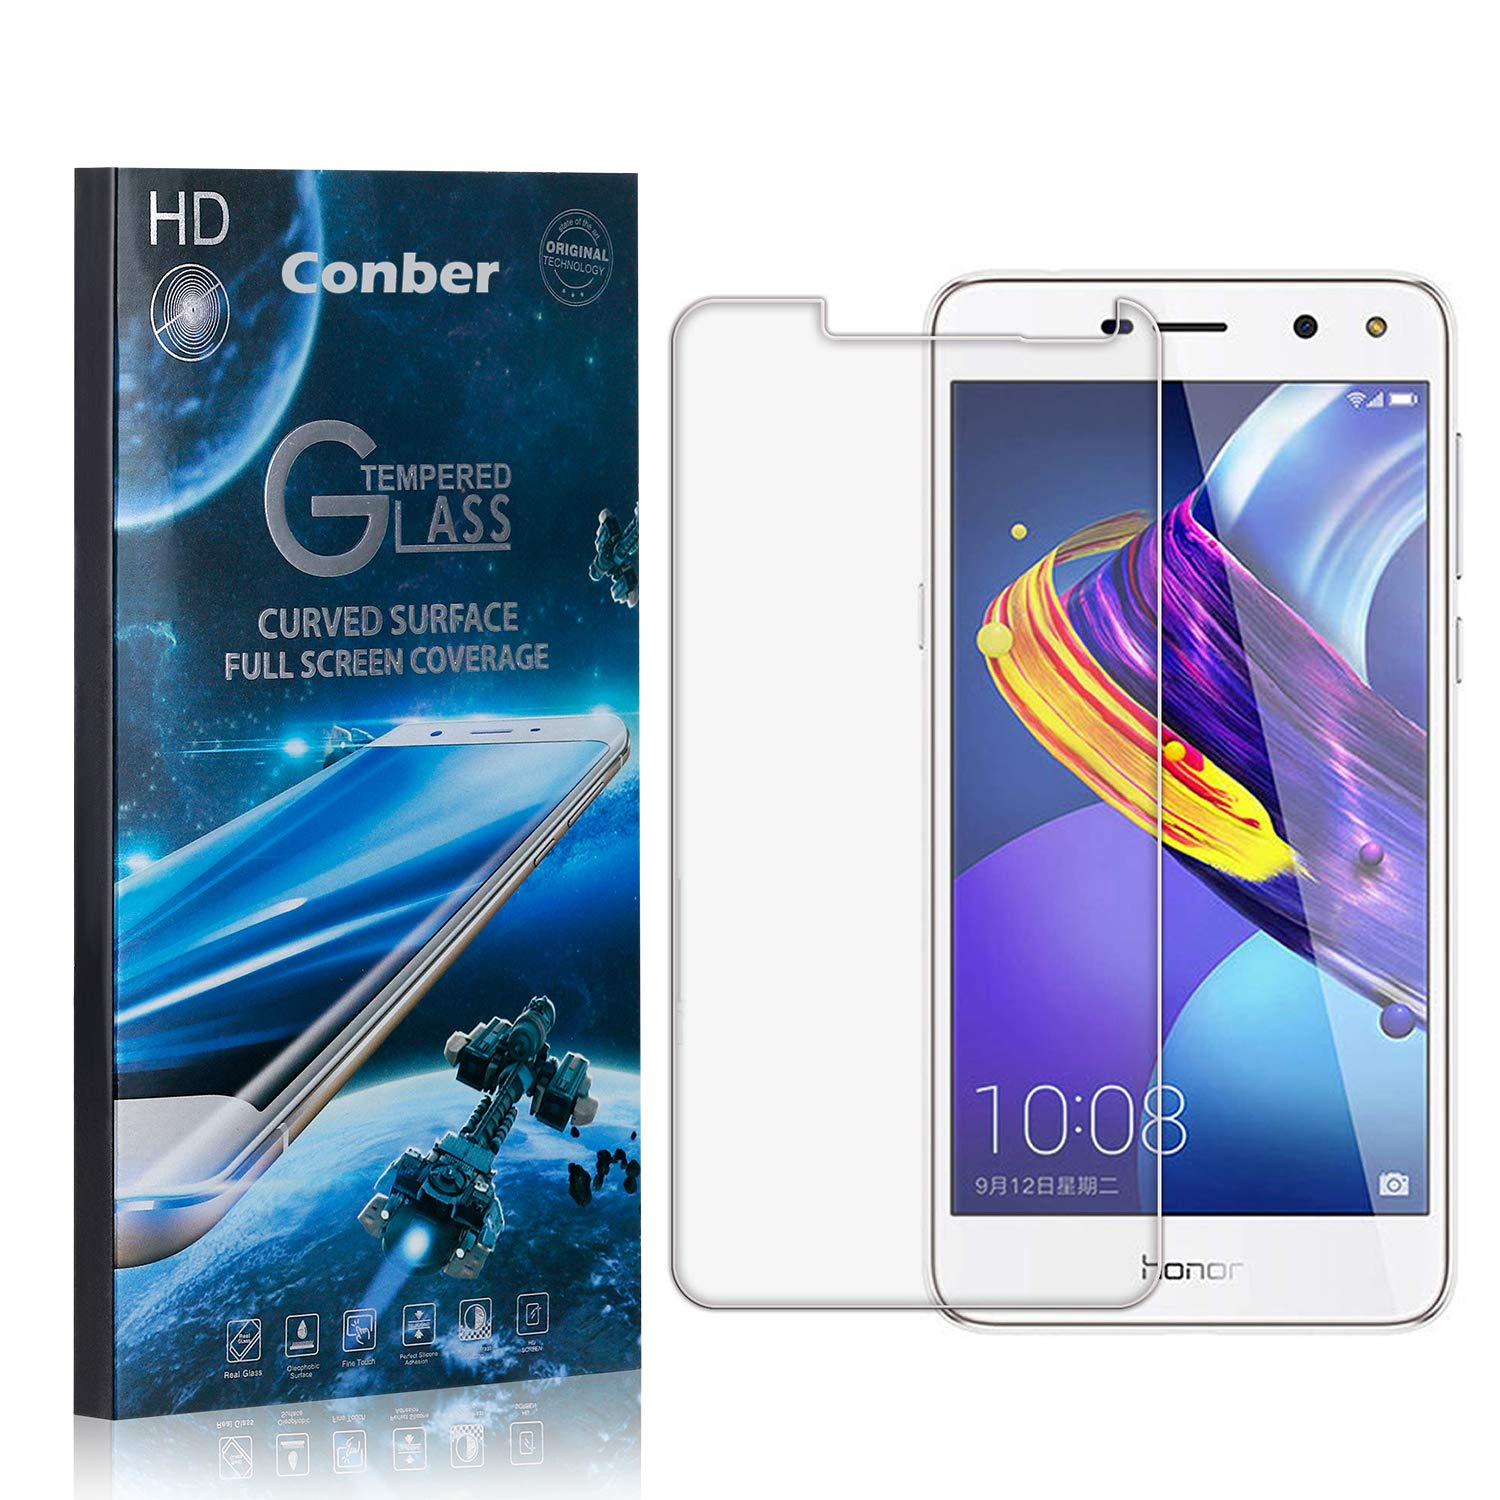 Conber 3 Pack Screen Protector for National uniform free shipping Tulsa Mall Scratch-Re 2017 Y6 Huawei